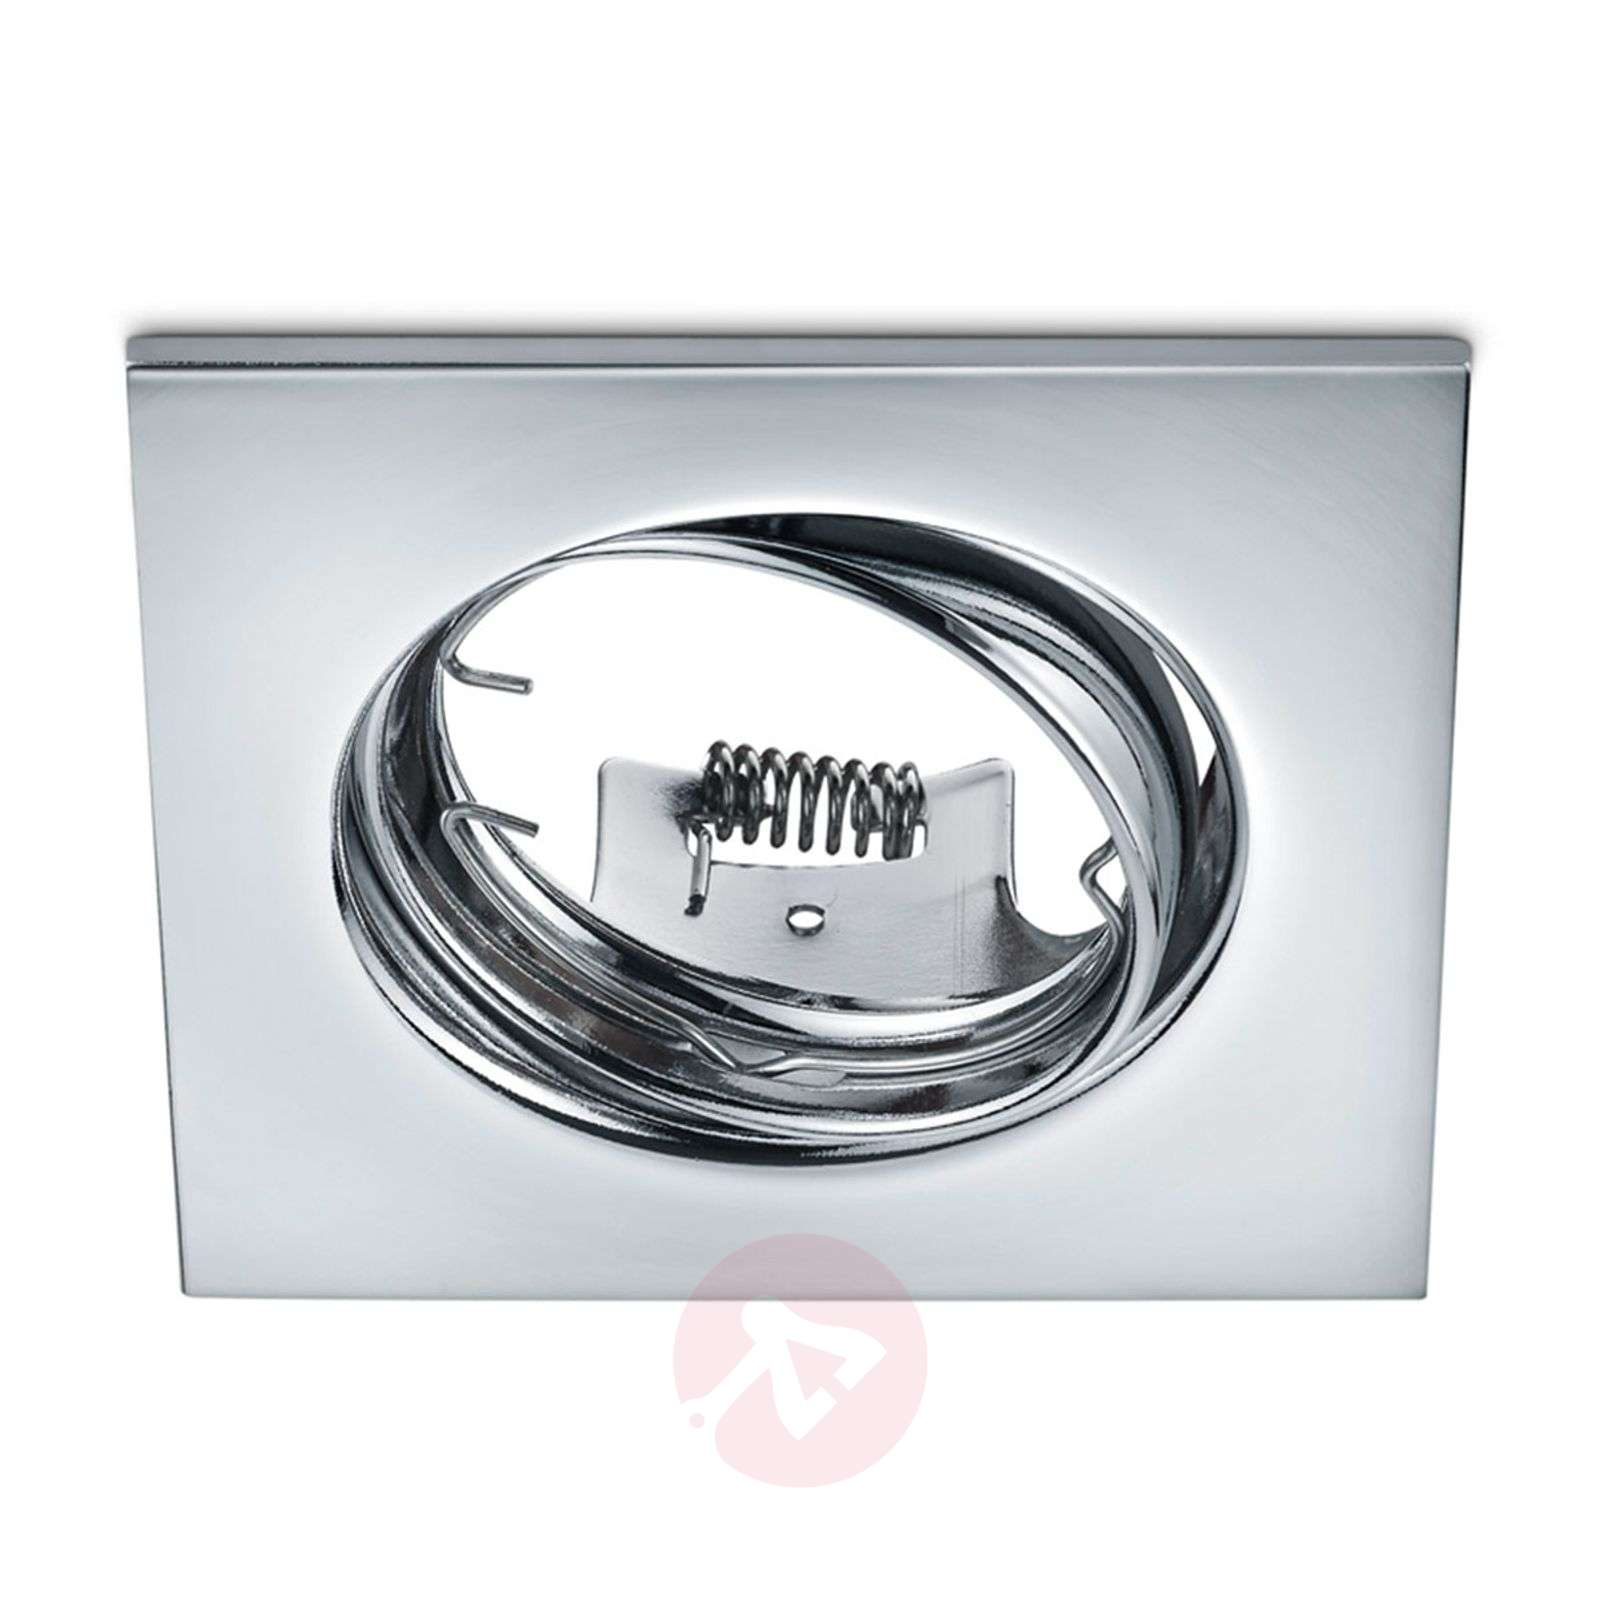 Downlight Jura inclinable angulaire-9005567X-01